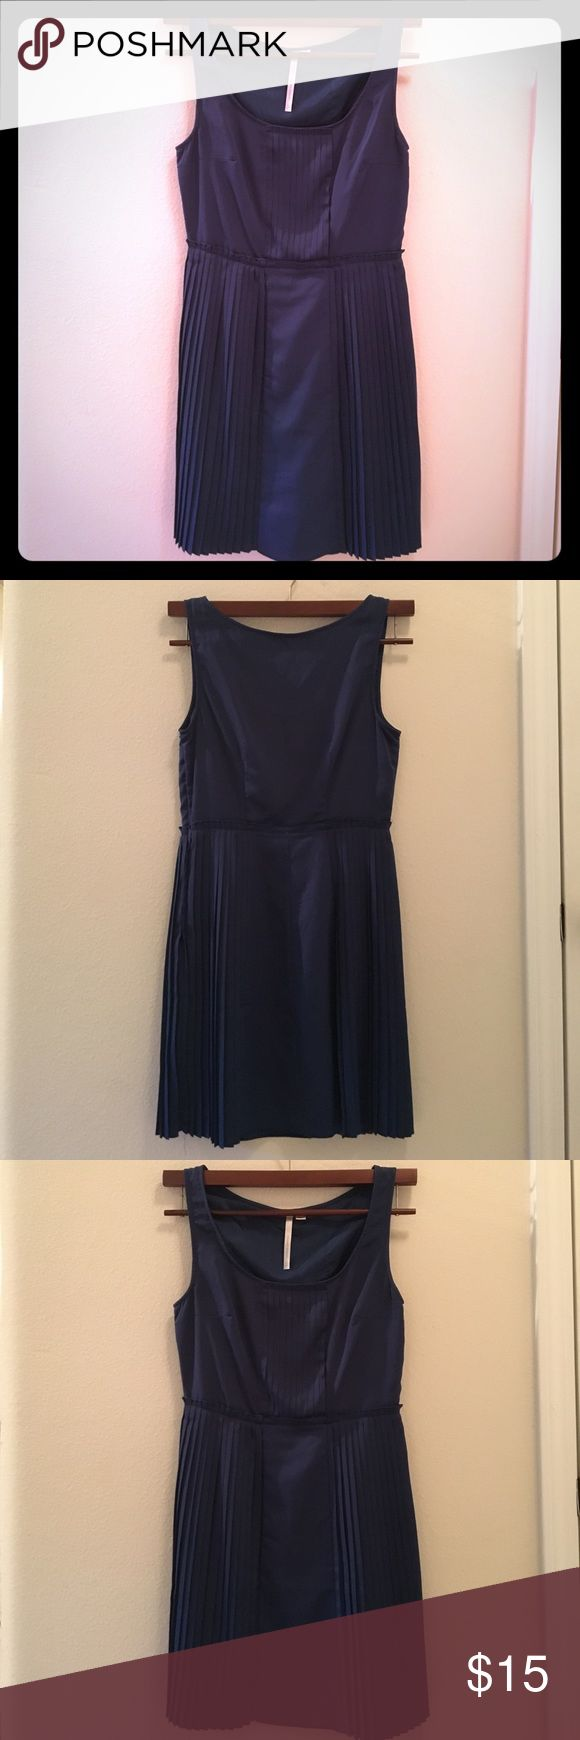 LC Lauren Conrad Women's Dress Size 8 Navy Pleated LC Lauren Conrad Size 8 Navy Pleated Sleeveless Women's Dress. Has lining underneath. Zips up on left side. In good condition, gently used. Looks great with a pair of nude heels! LC Lauren Conrad Dresses Mini